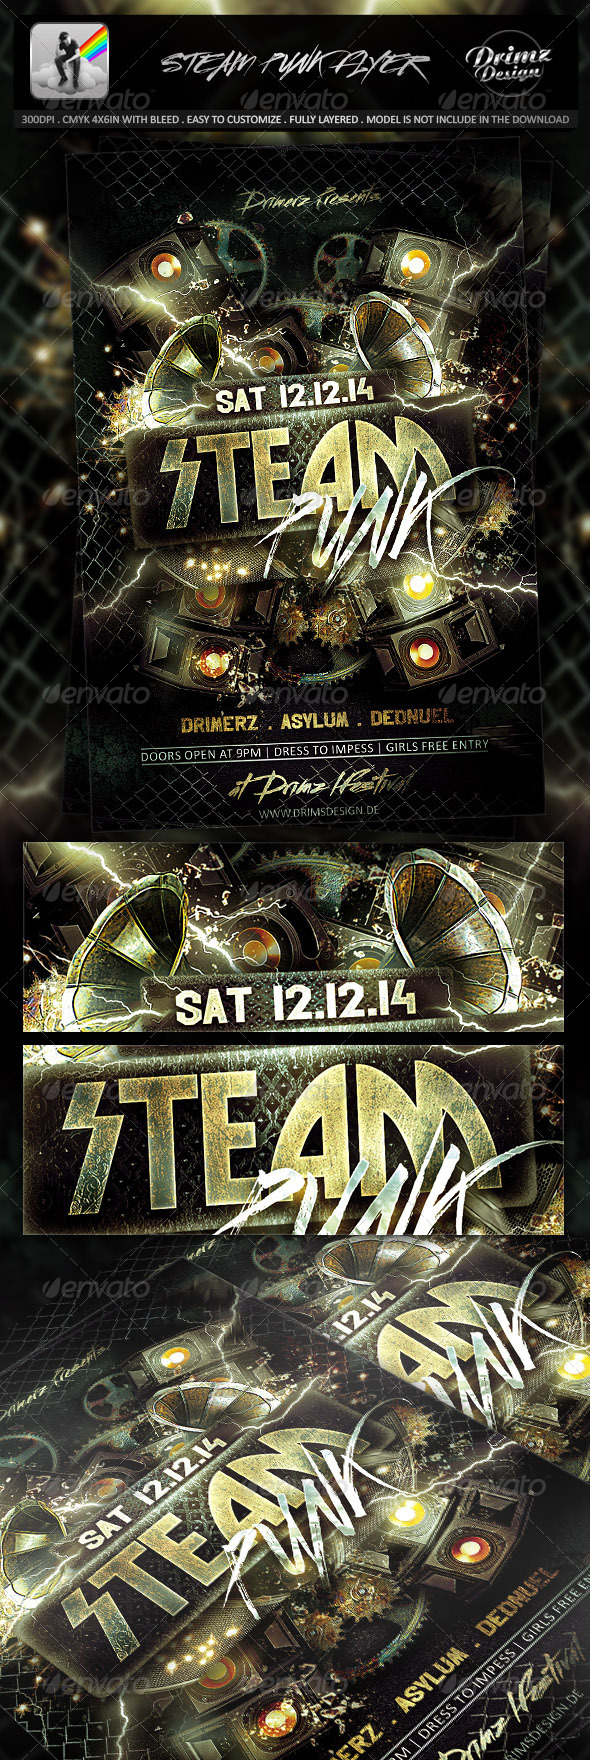 GraphicRiver Steam Punk Flyer 7301315